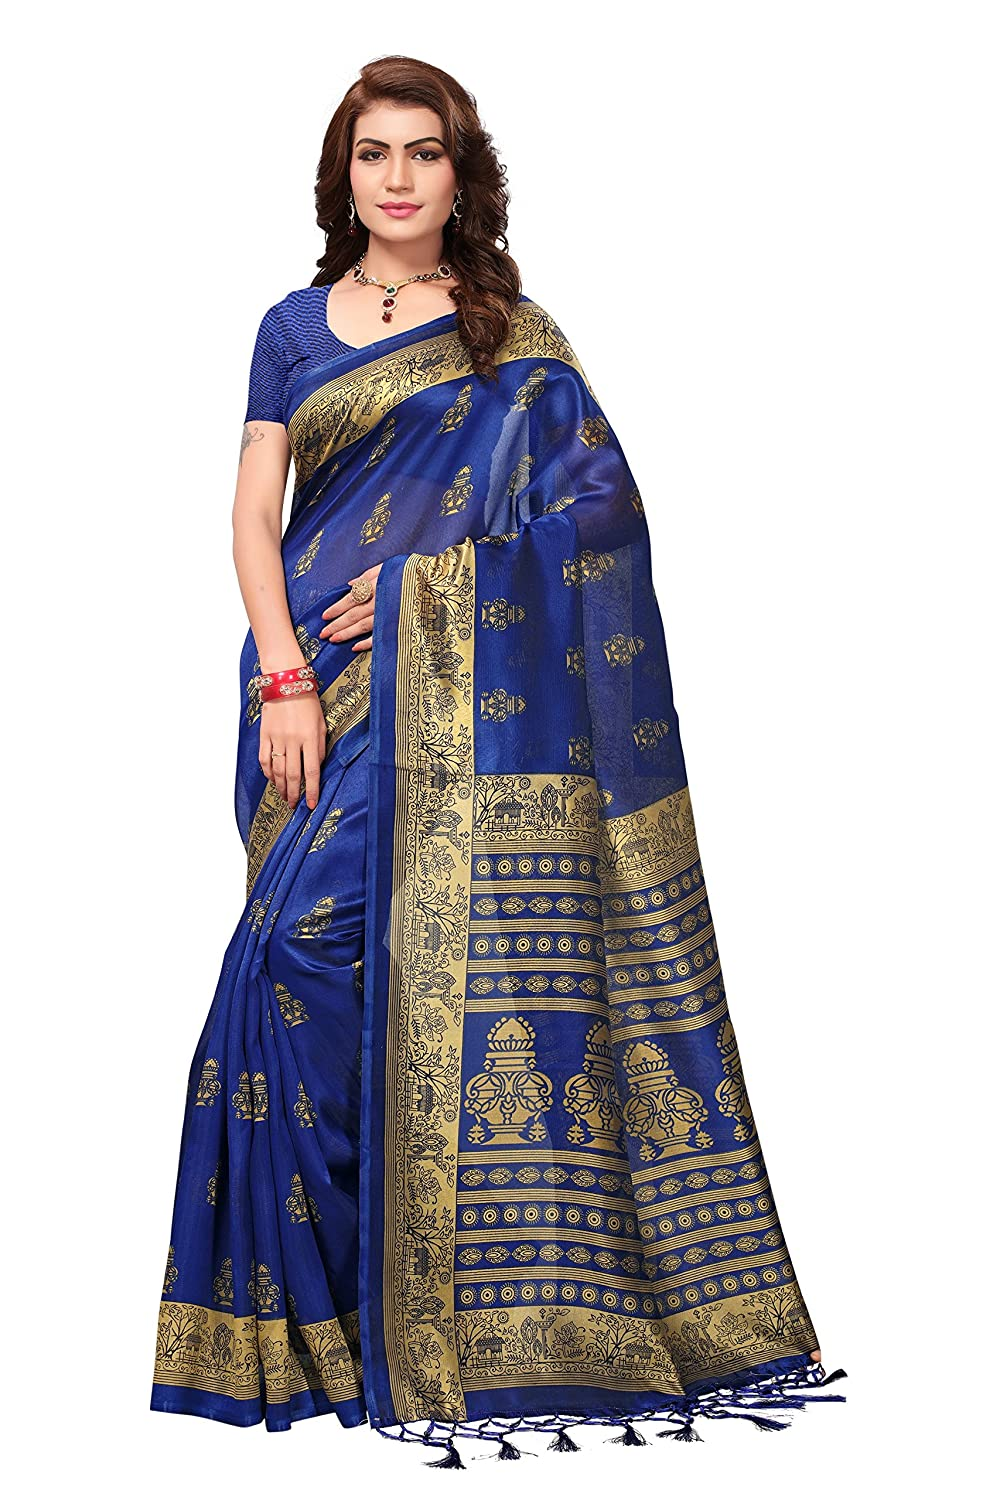 8faa968b12666 Indira Designer Silk Saree with Blouse Piece (BM-G2FZ-NFXC0 Blue Free  Size)  Amazon.in  Clothing   Accessories